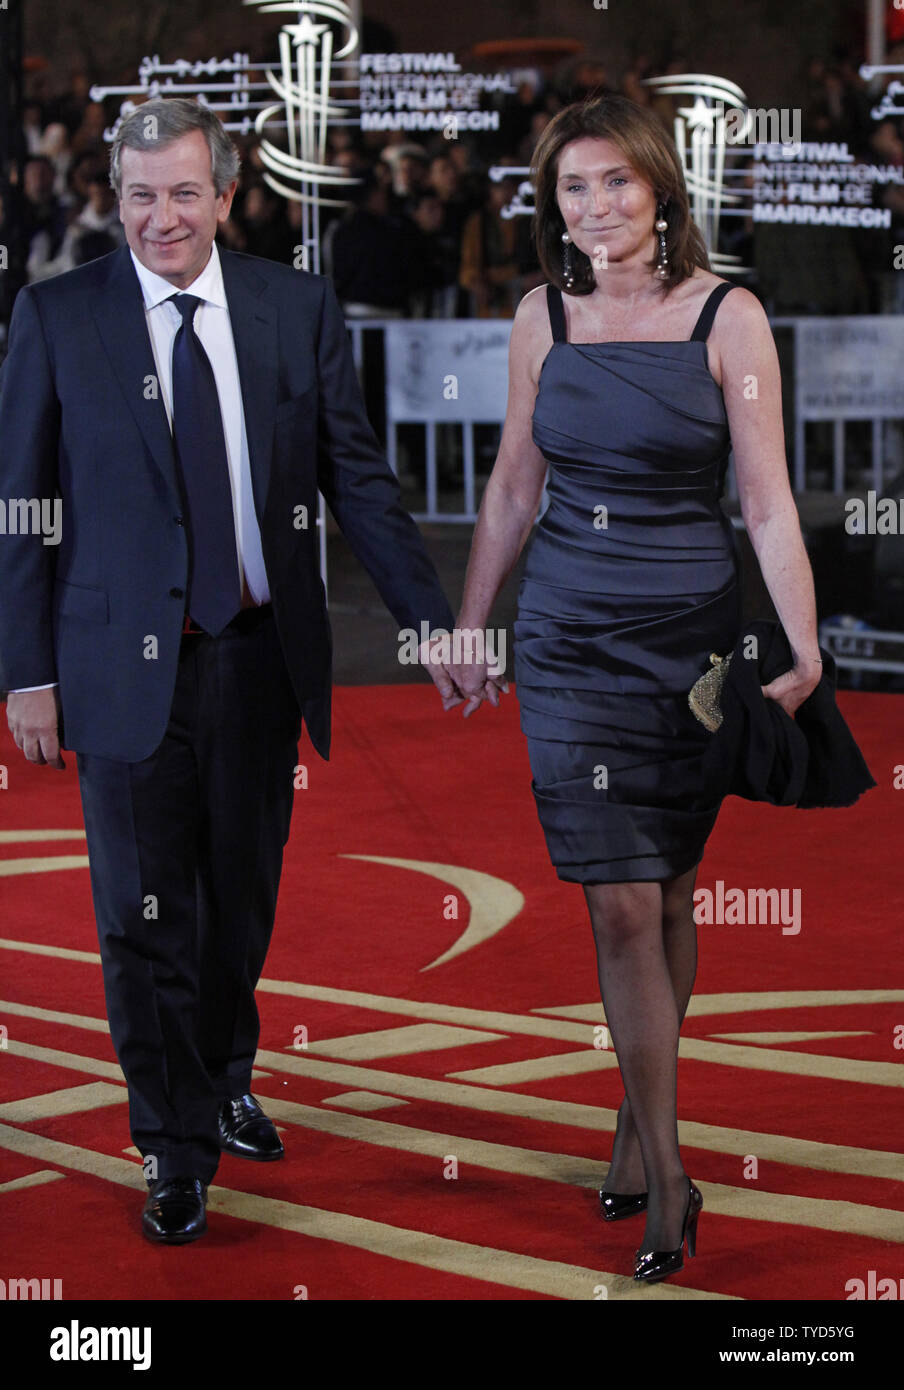 Cecilia Attias The Ex Wife Of French President Nicolas Sarkozy And Her Husband Richard Attias Arrive On The Red Before A Tribute Ceremony Recognizing The Career Of Christopher Walken At The Marrakech International